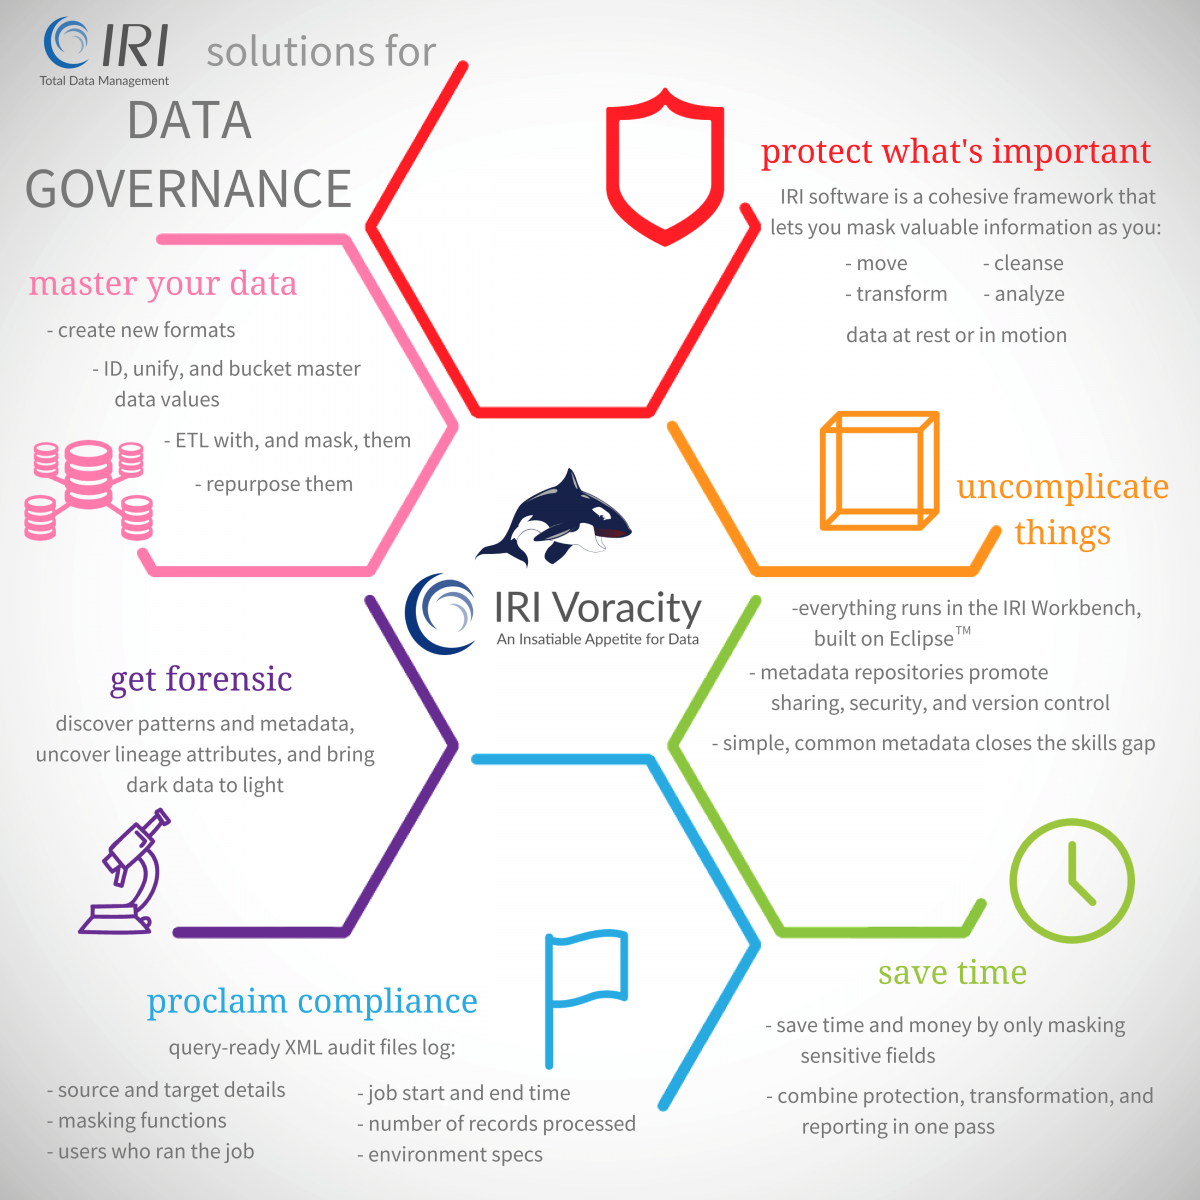 Data Governance Solutions from IRI | IRI, The CoSort Company